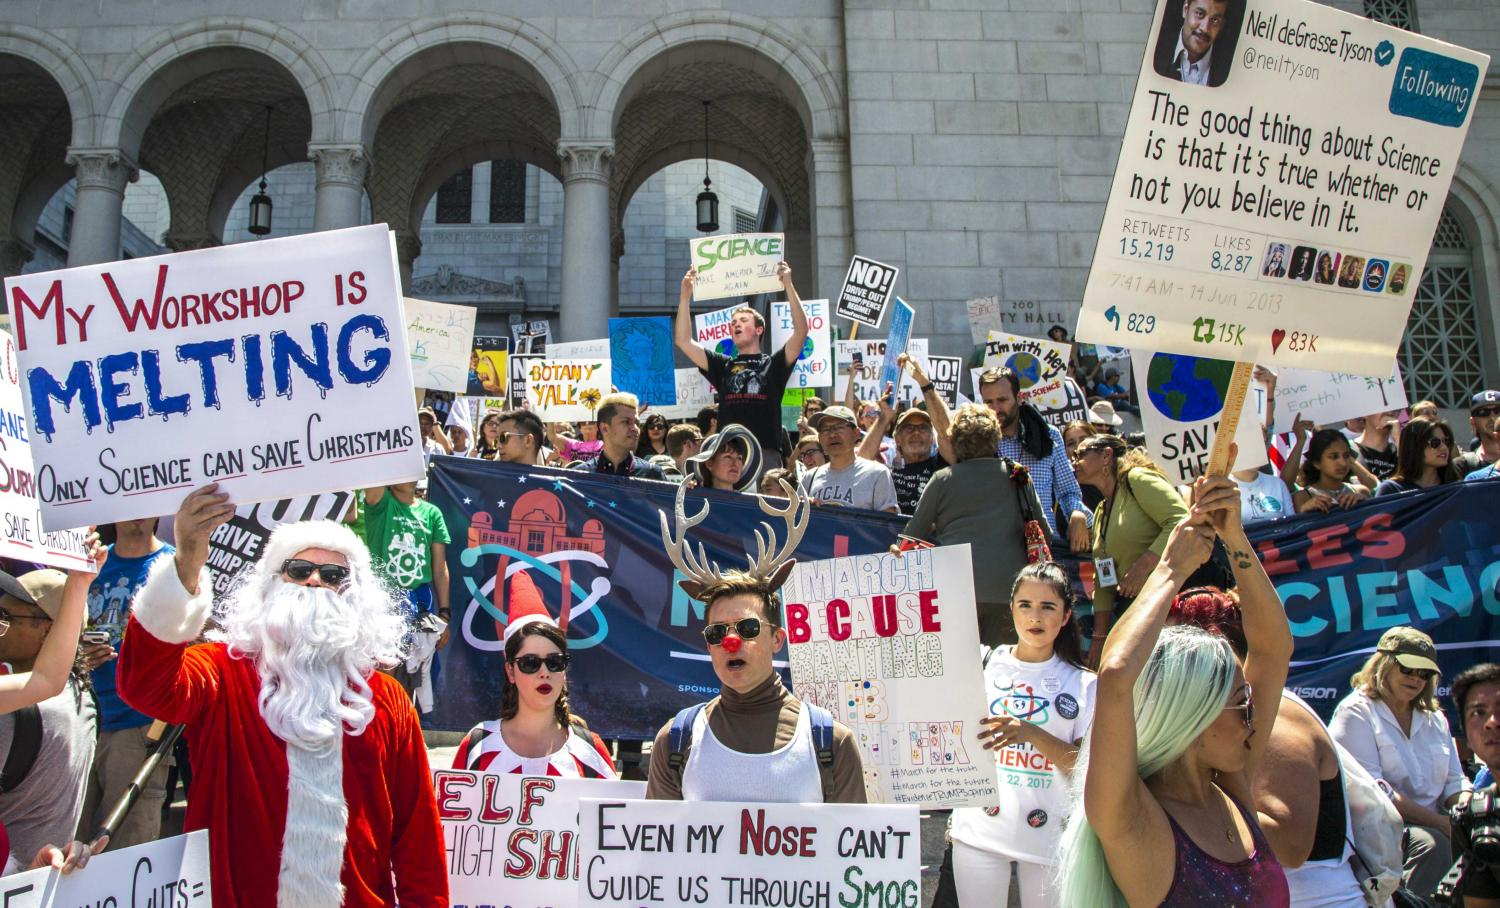 Thousands of protesters arrive at Los Angles City Hall and make their presence felt by chanting and holding up their signs as they wait for key speakers during the March for Science event in downtown Los Angles, California, on Saturday, April 22 2017. Matthew Martin.